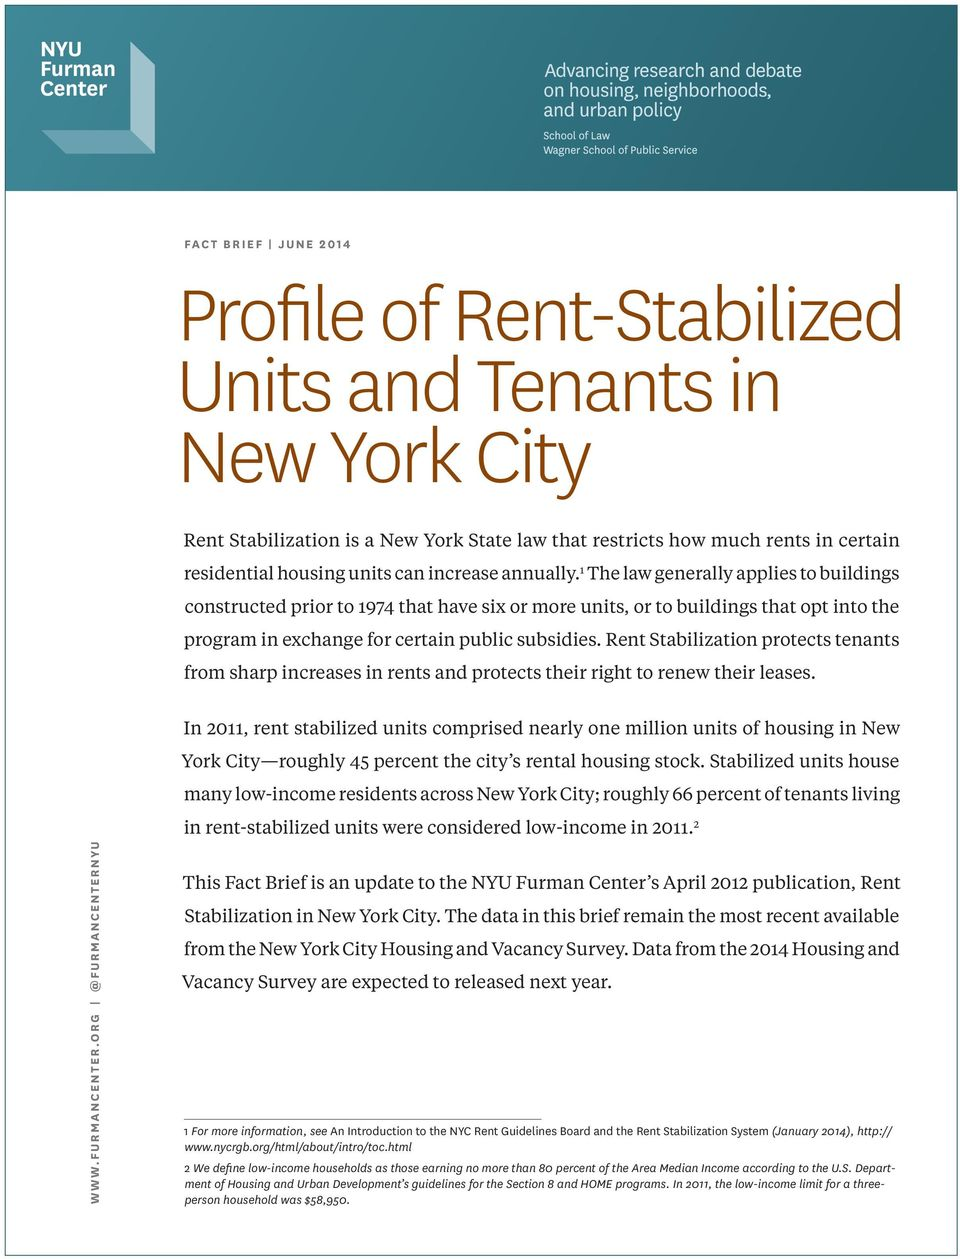 Stabilization protects tenants from sharp increases in rents and protects their right to renew their leases.